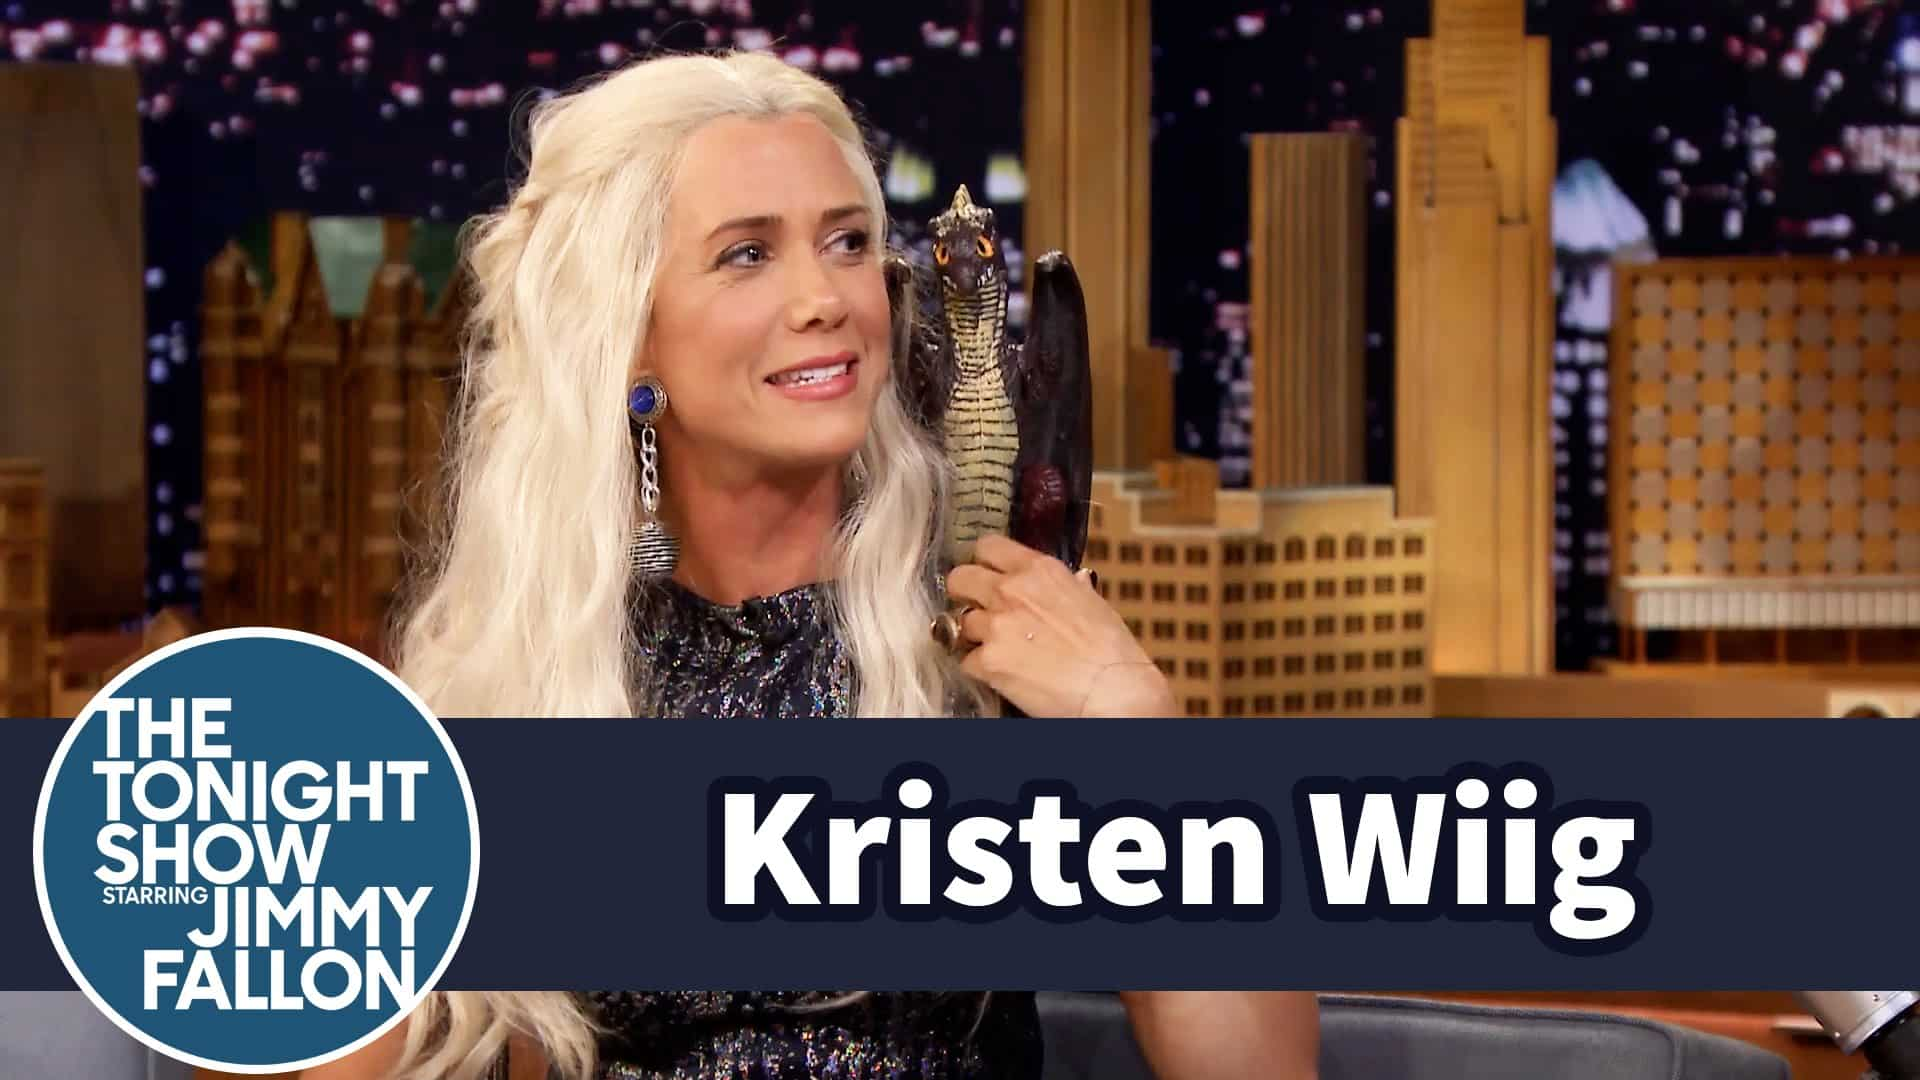 Featured image for Kristen Wiig Does 'Tonight Show' Interview As Daenerys Targaryen From 'Game Of Thrones'